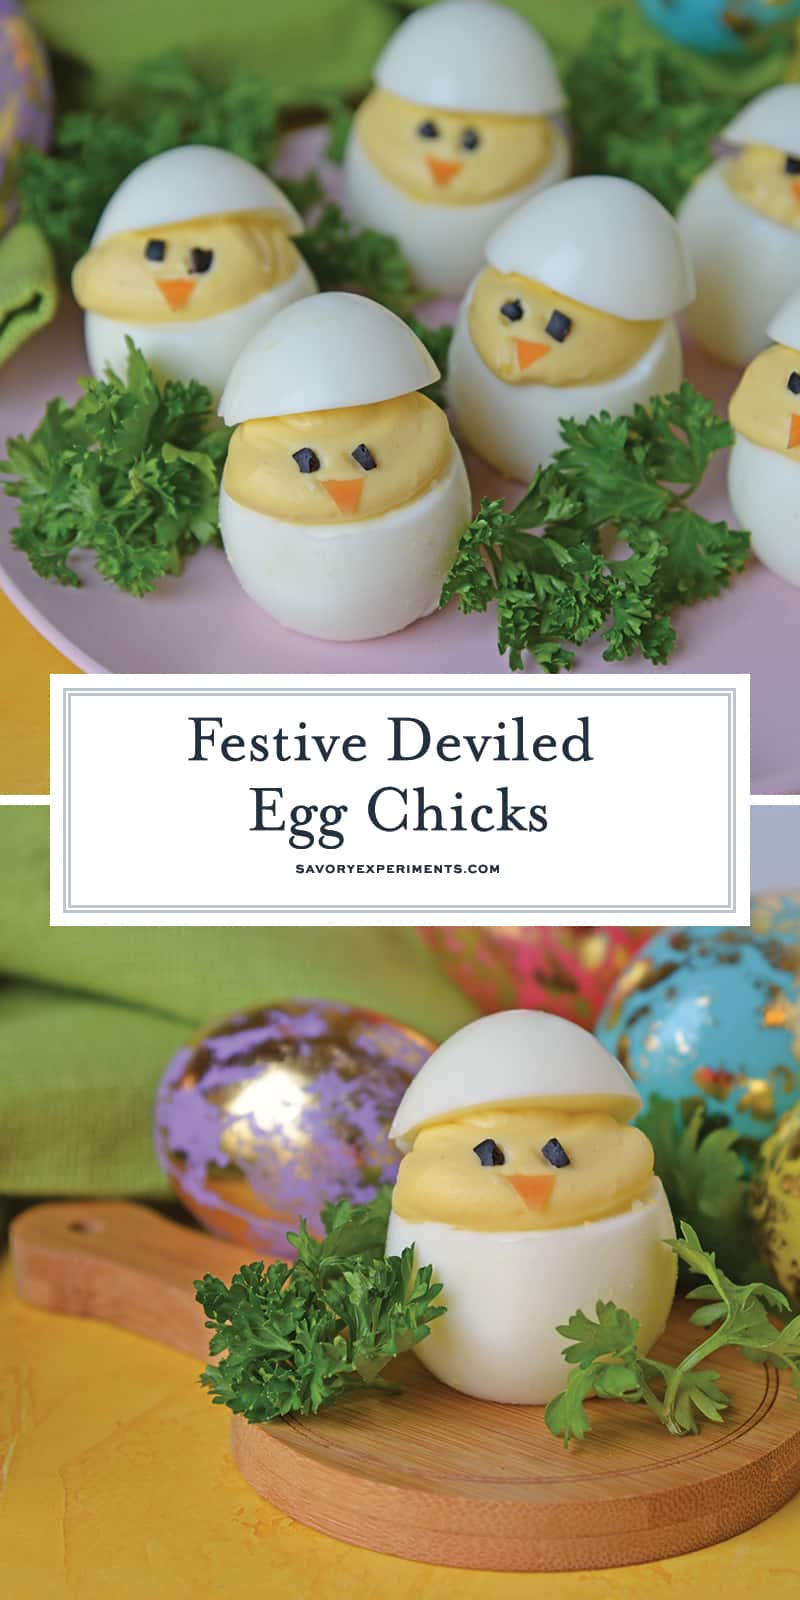 Deviled Egg Chicks take a classic deviled egg recipe and make them into Easter deviled eggs! Perfect as an Easter brunch recipe or appetizer. #deviledeggchicks #easterdeviledeggs www.savoryexperiments.com